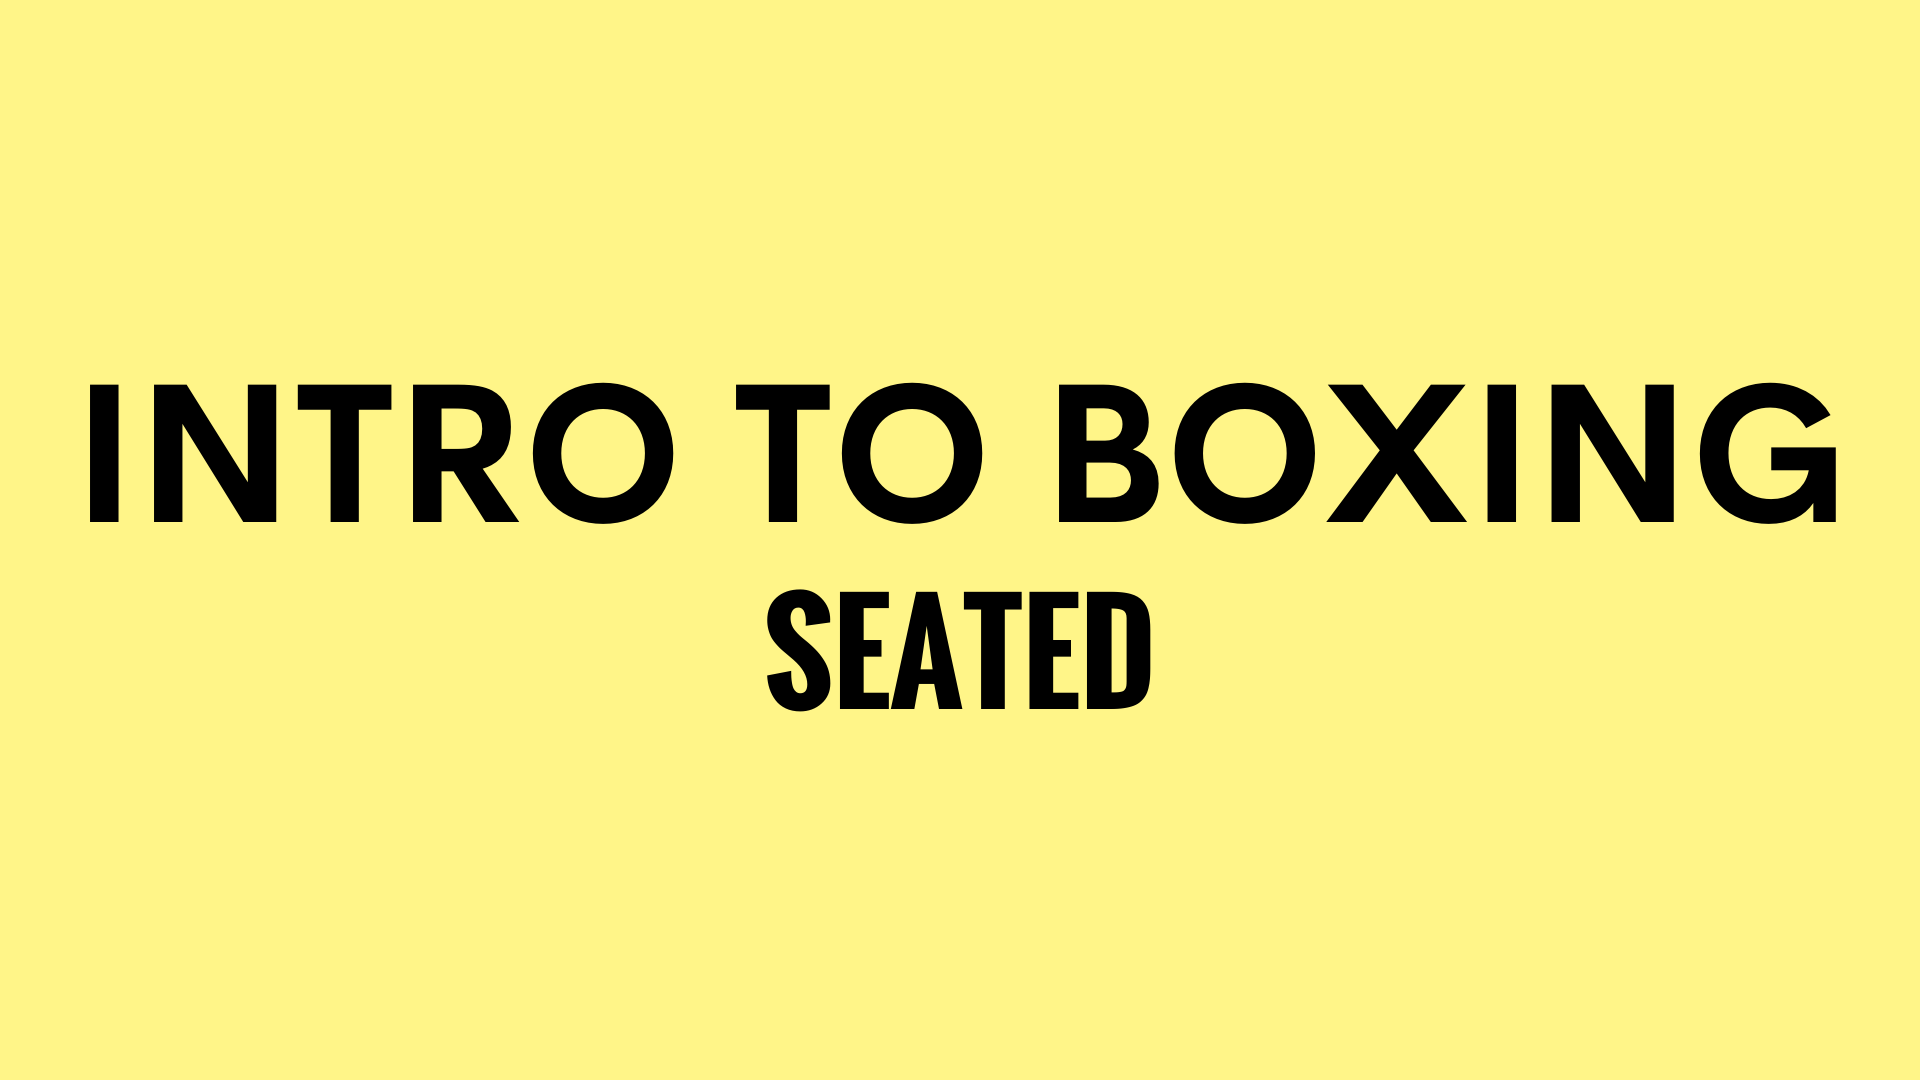 INTRO TO BOXING SEATED